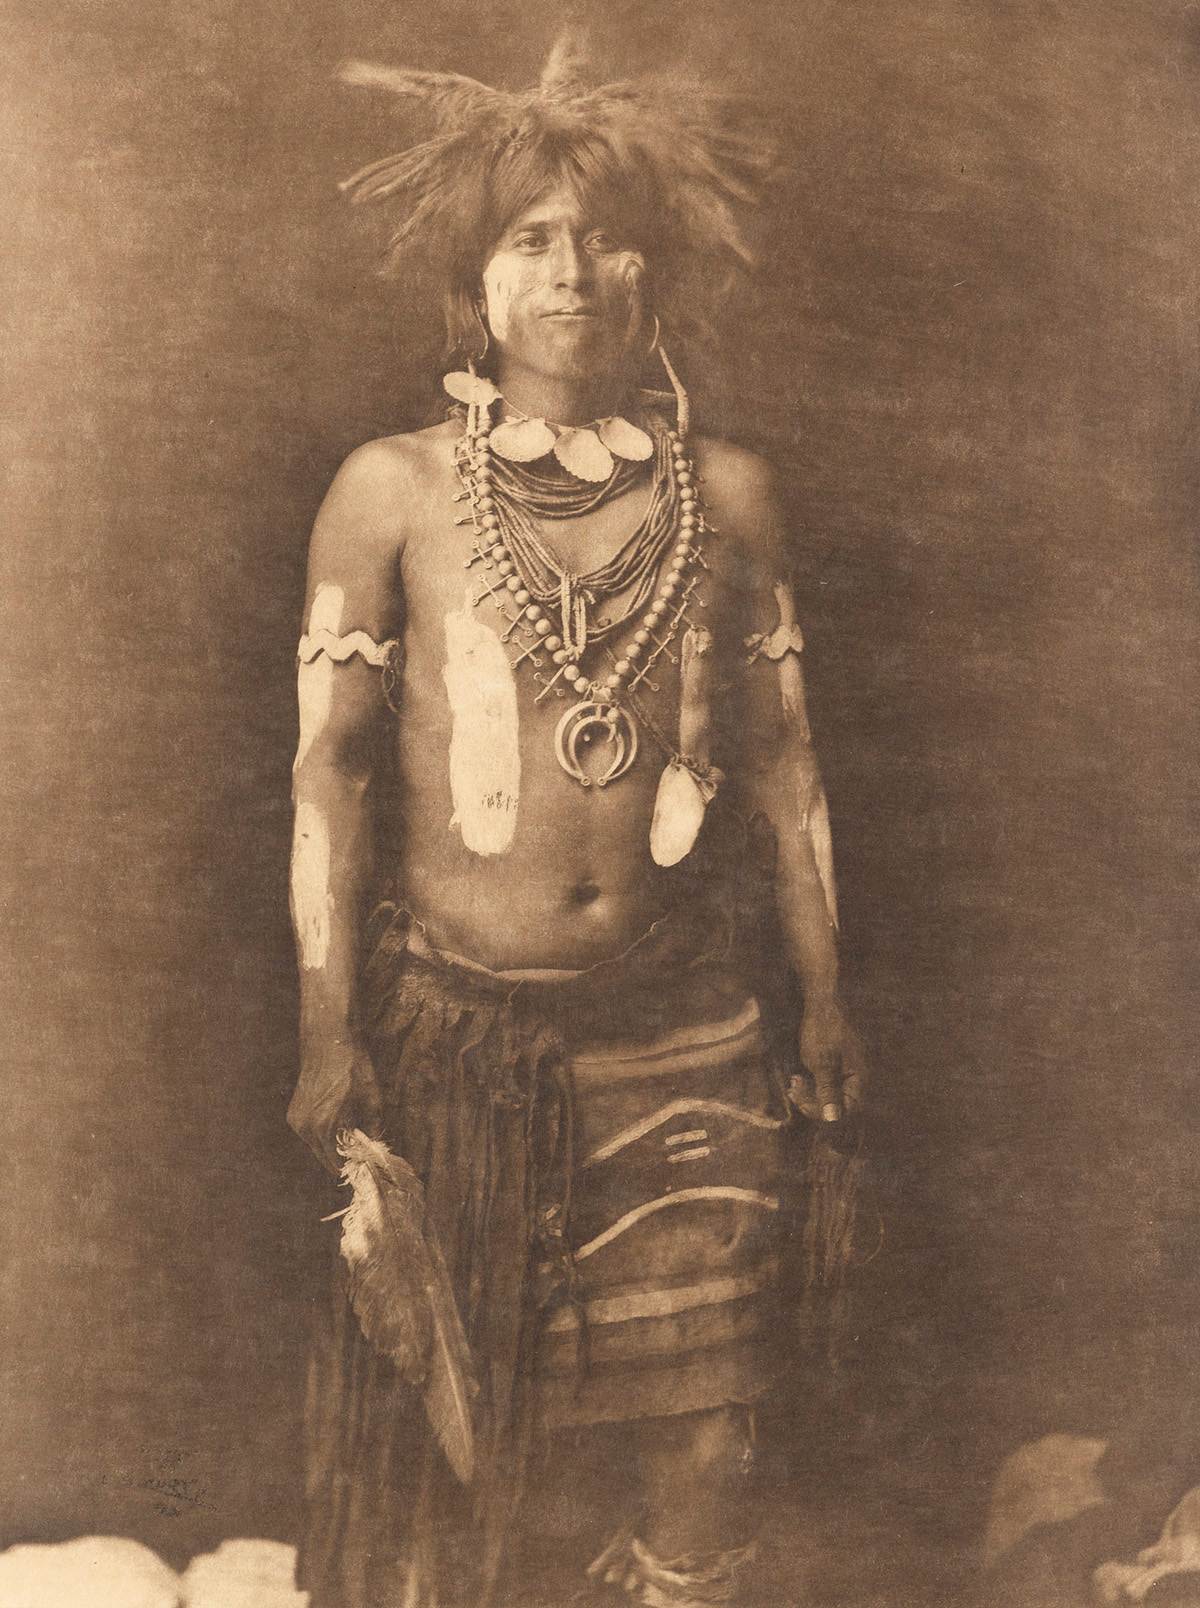 EDWARD S. CURTIS (1868-1952) Group of 4 large-format photogravures from The North American Indian.